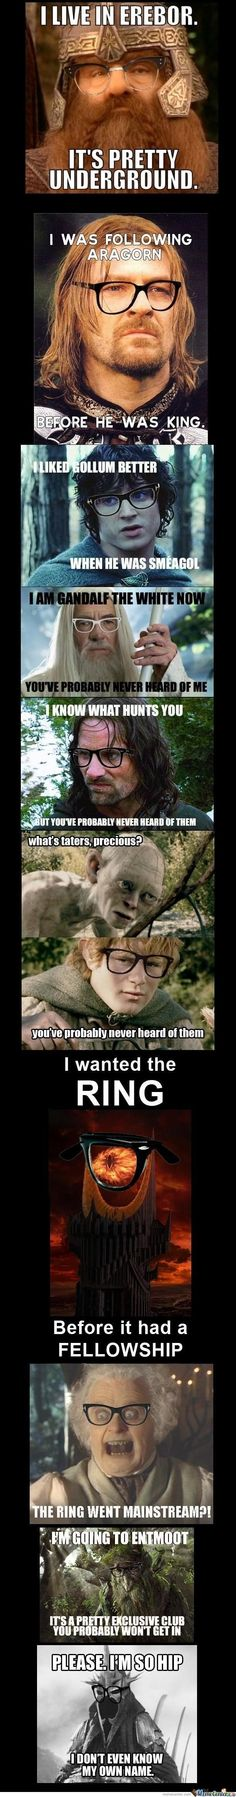 Lord of the Rings. FAVE OF ALL TIME